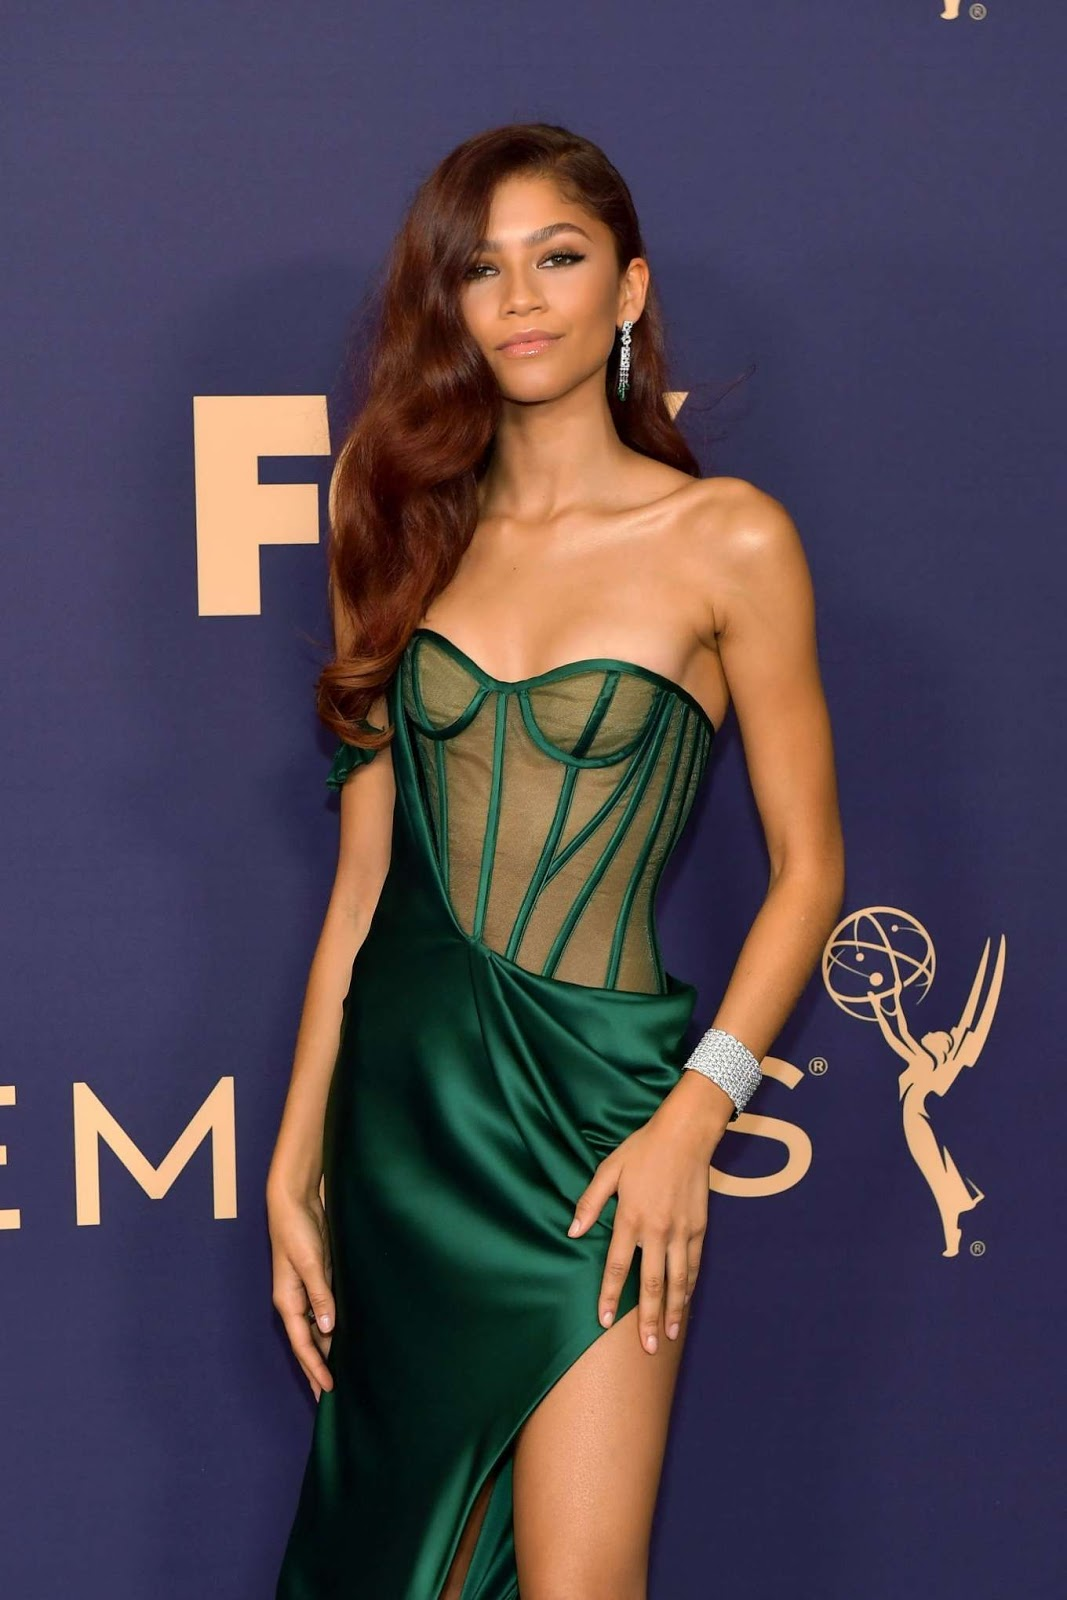 Zendaya Brings Poison Ivy Beauty Inspiration to the Emmys Red Carpet